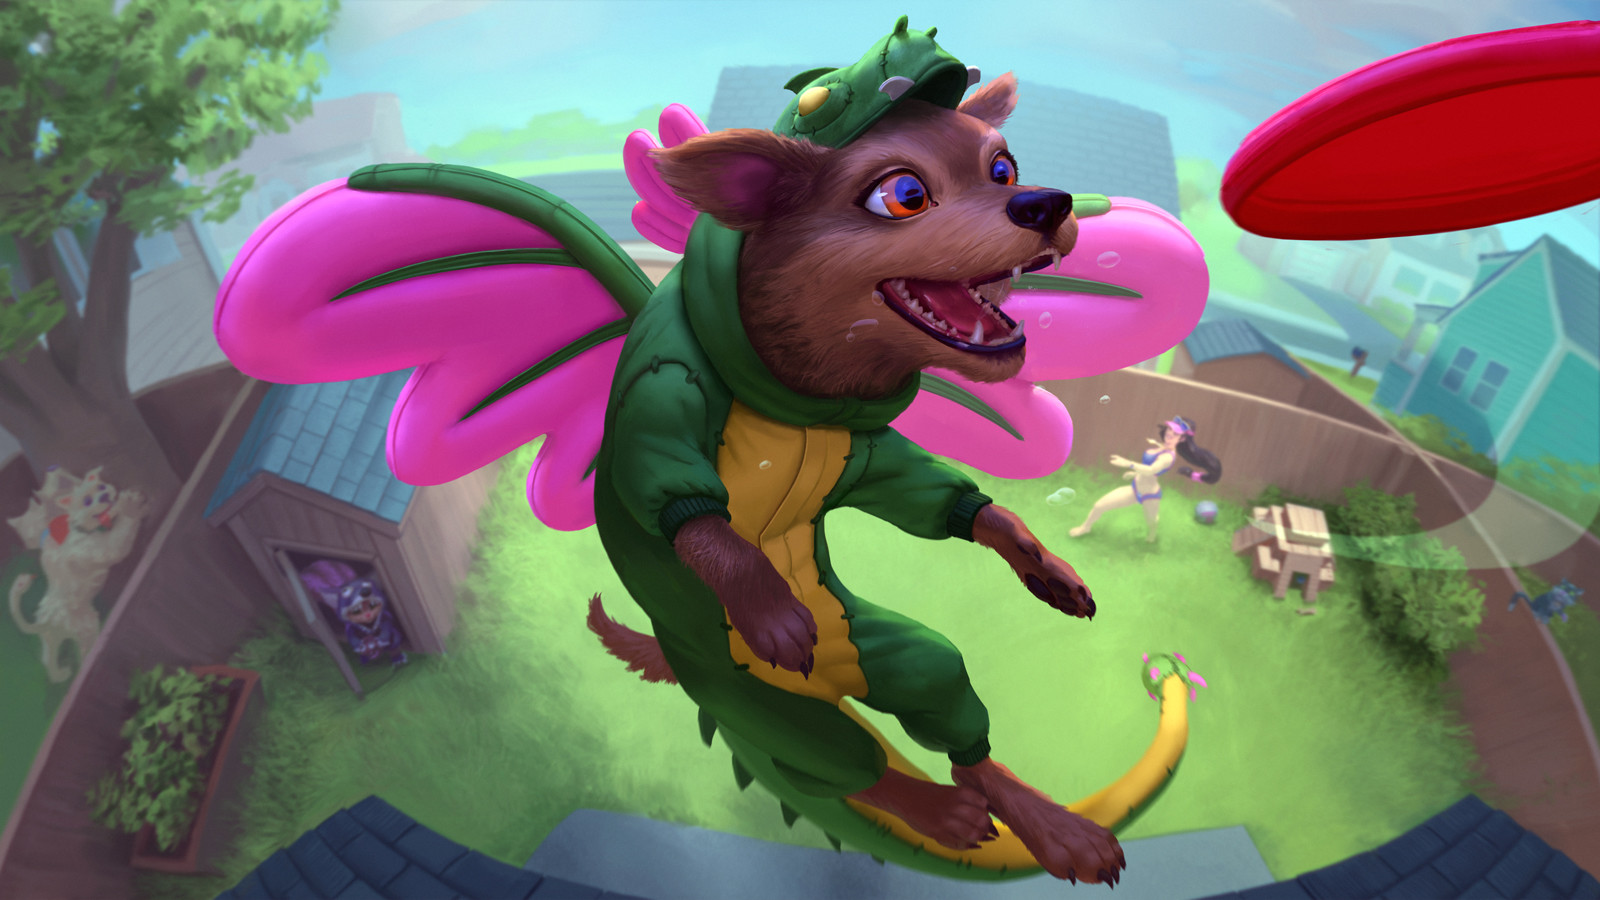 Devin platts kukulkan dragondoggo splash